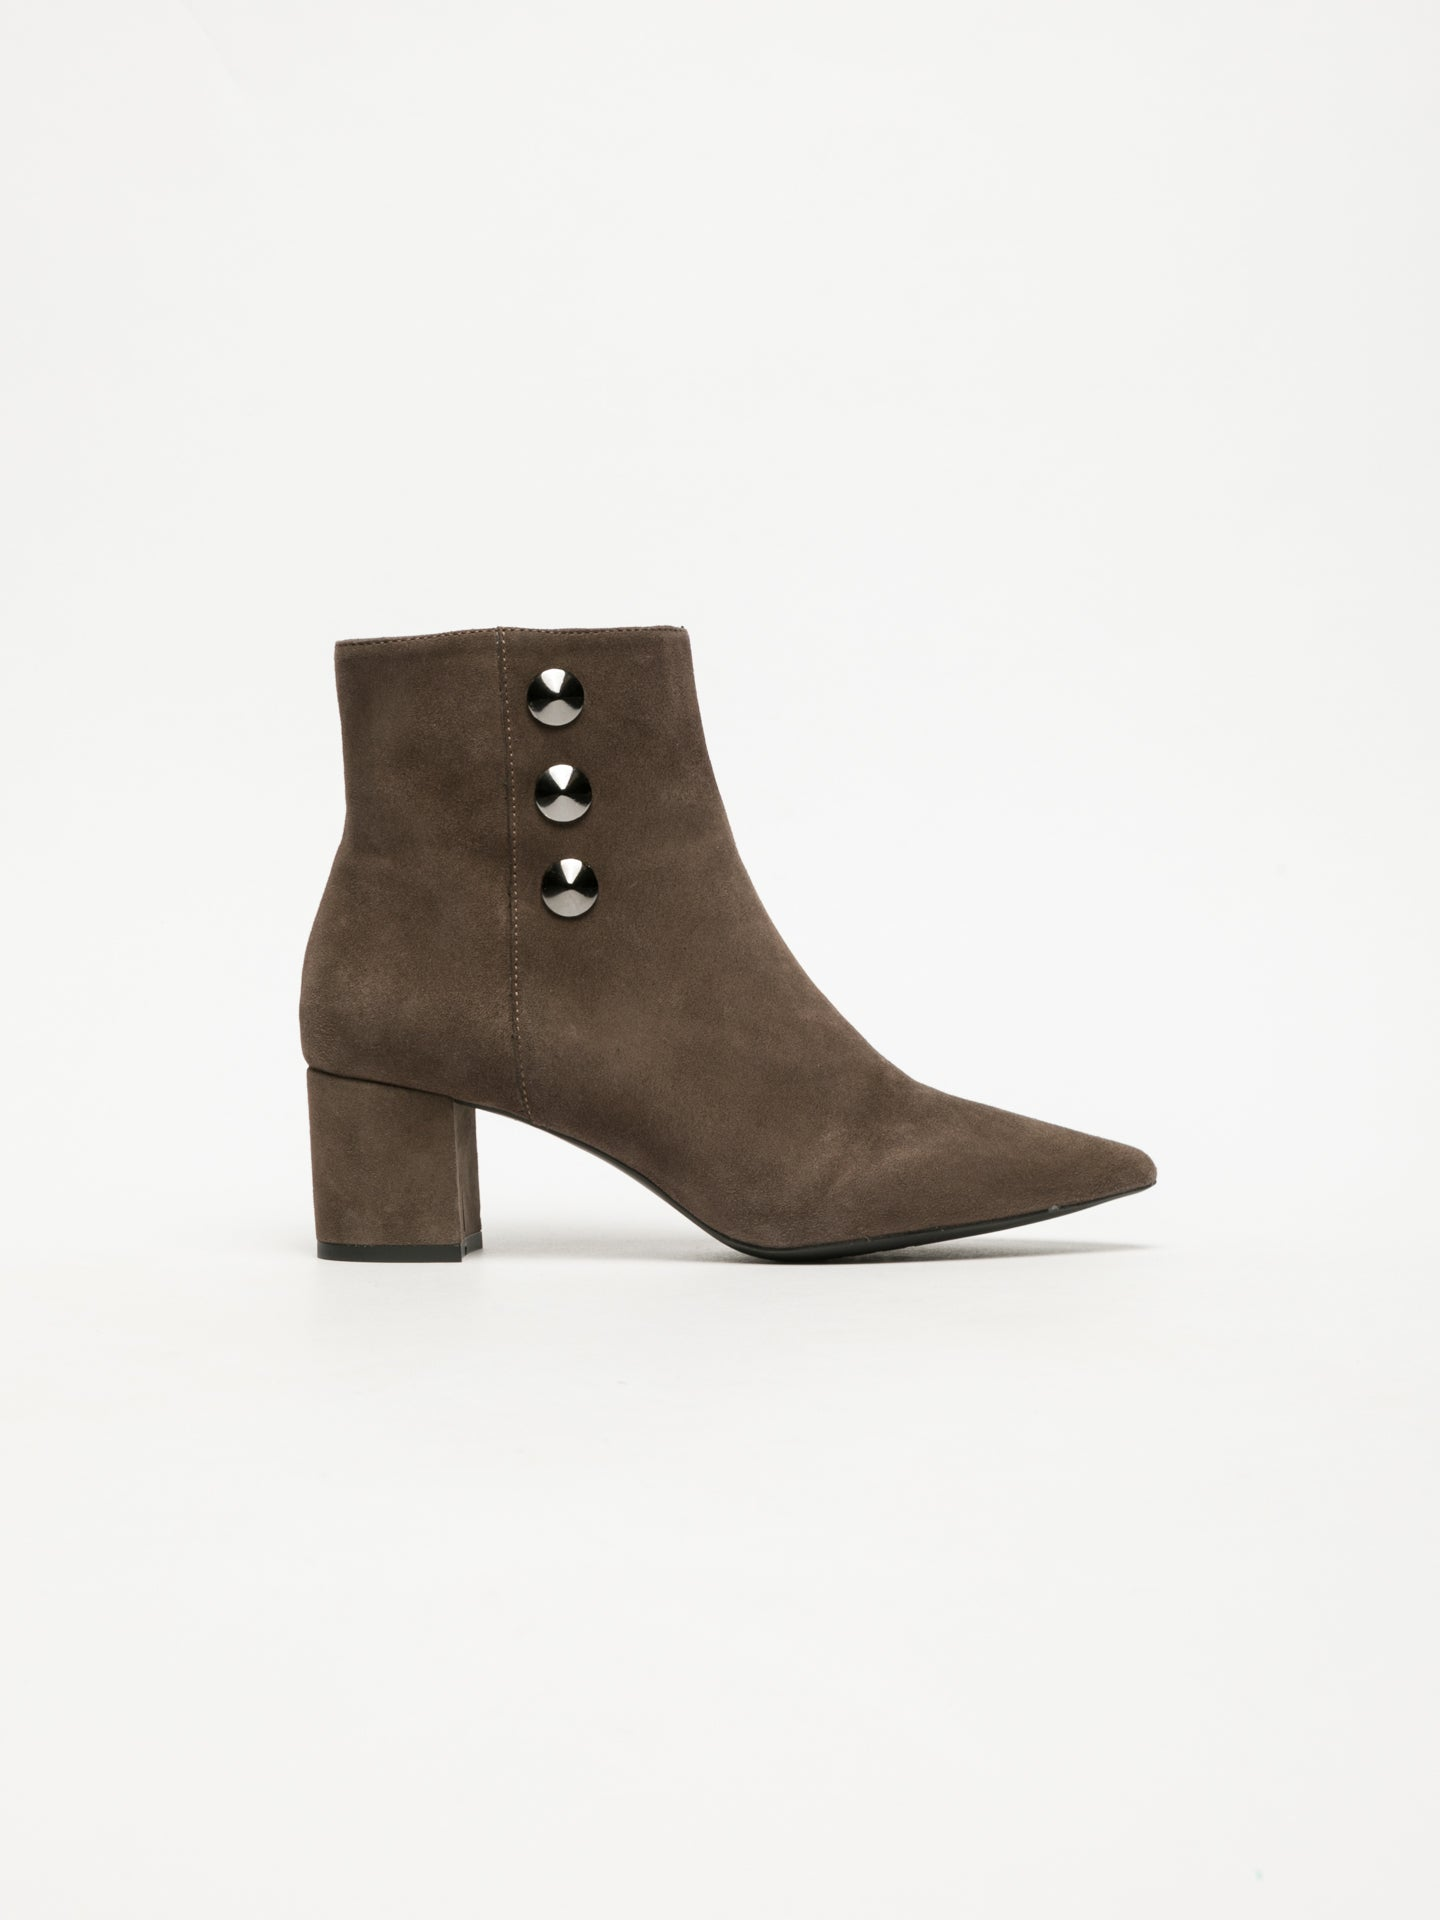 Sofia Costa Tan Zip Up Ankle Boots